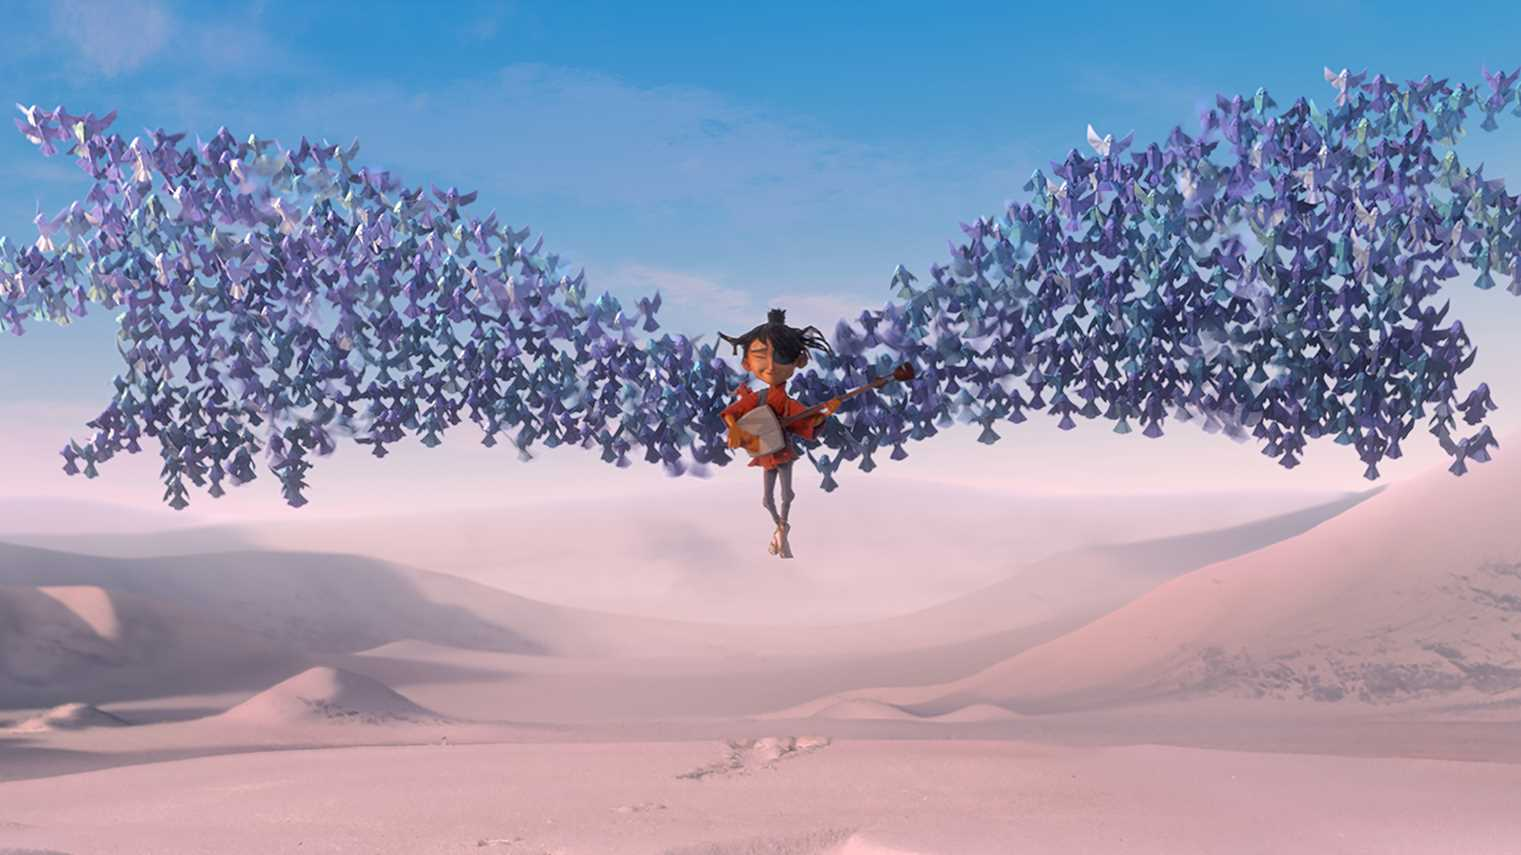 Kubo and the Two strings is a spectacular action-adventure with a powerful message about the magic of storytelling and memory.